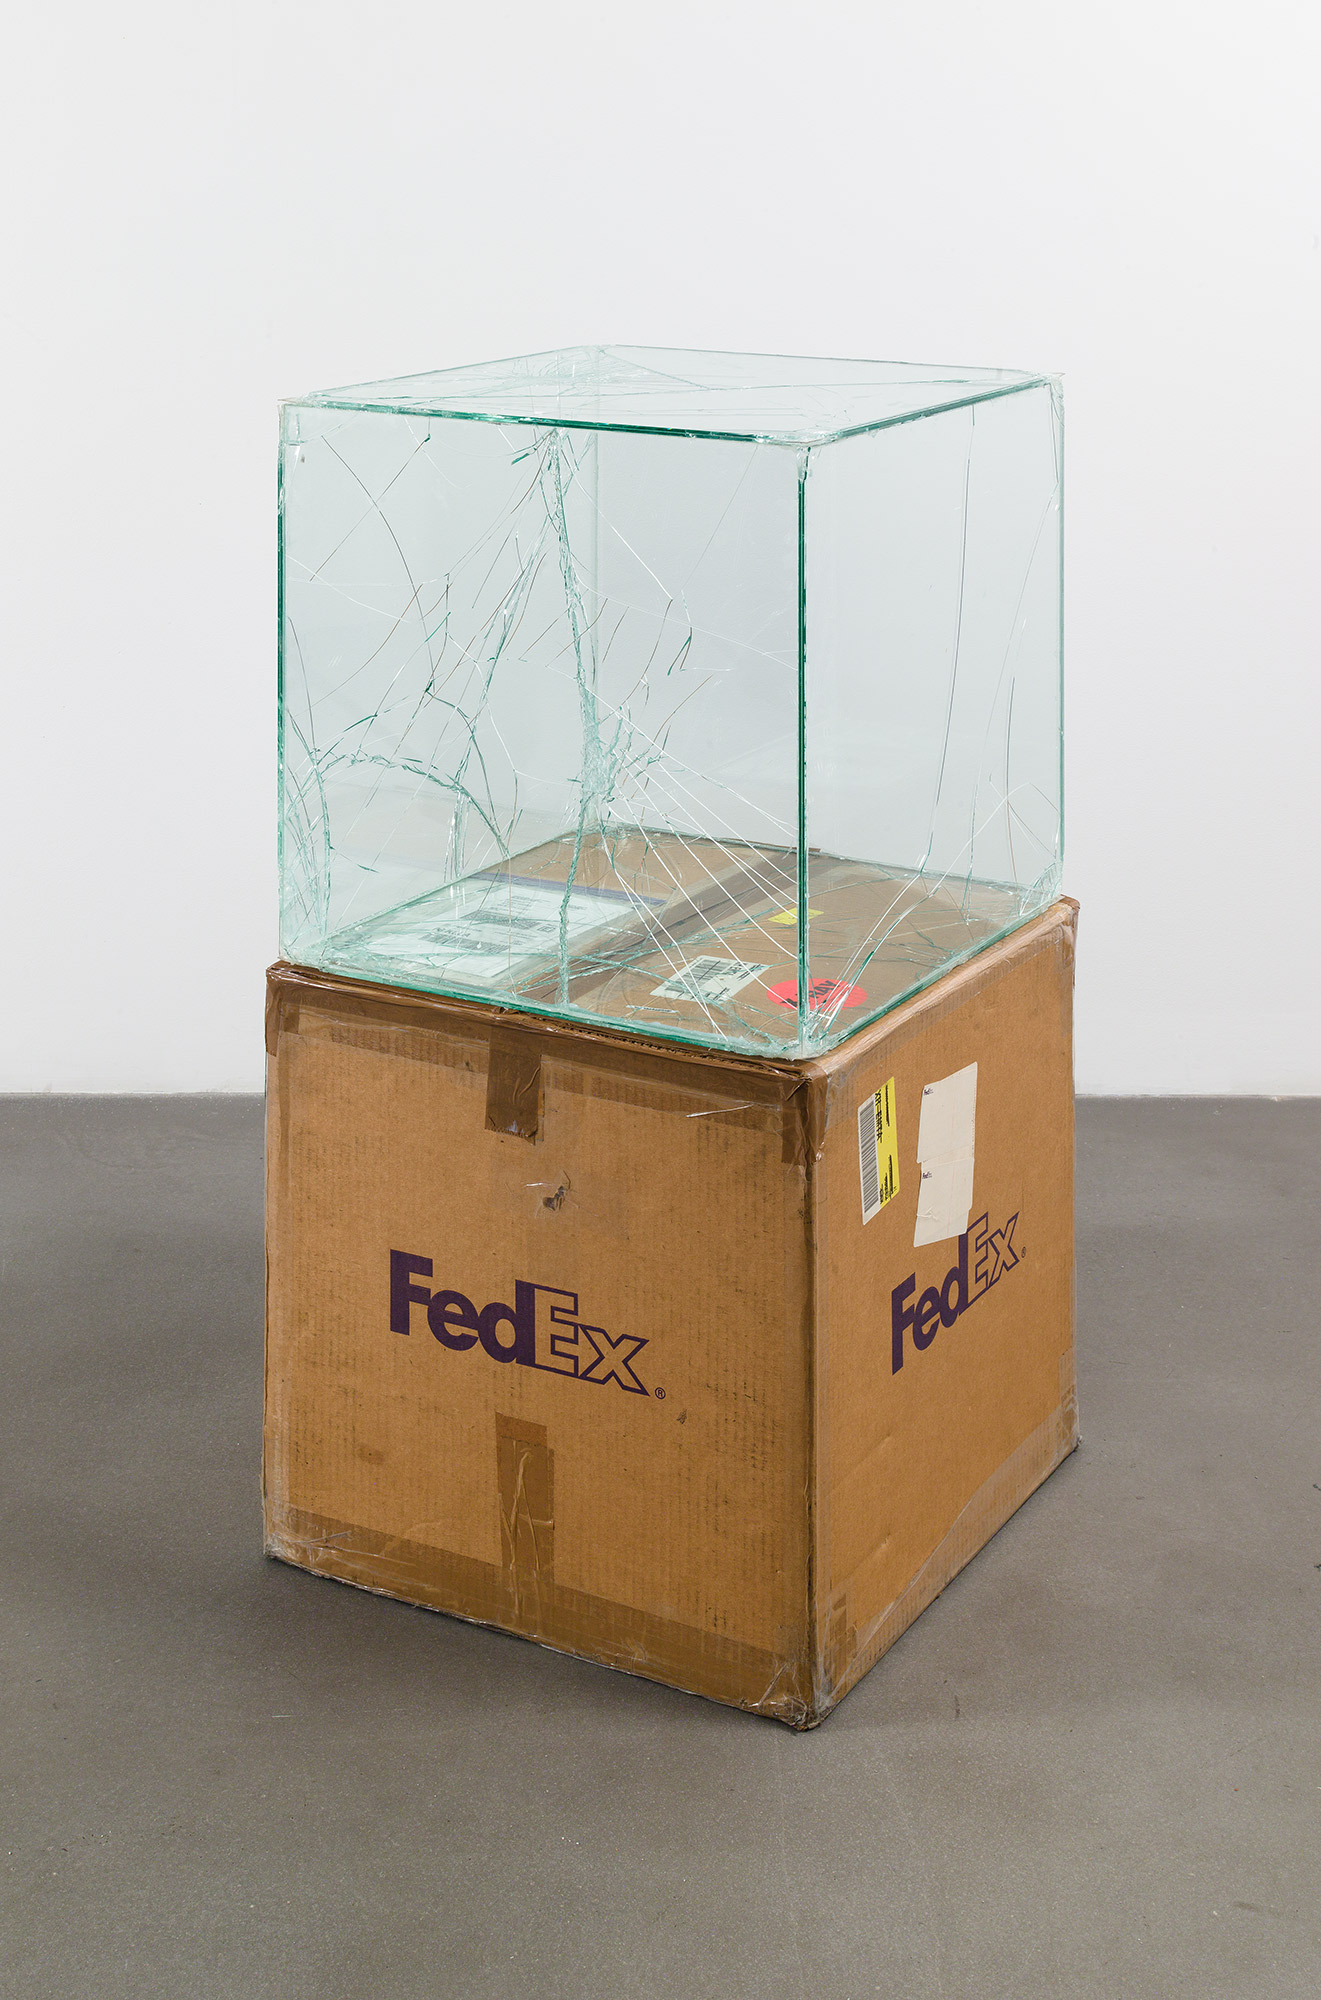 FedEx® Large Kraft Box  © 2005 FEDEX 330508 REV 10/05 SSCC, International Priority, Los Angeles–Brussels trk#865282057975, October 27–30, 2008, International Priority, Brussels–Los Angeles trk#866071746396, December 8–9, 2008, Standard Overnight, Los Angeles–New York trk#774901659423, November 4–5, 2015, Standard Overnight, New York–Los Angeles trk#775241449093, December 21–22, 2015    2008–   Laminated glass, FedEx shipping box, accrued FedEx shipping and tracking labels, silicone, metal, tape  20 x 20 x 20 inches   FedEx Glass Works, 2007–